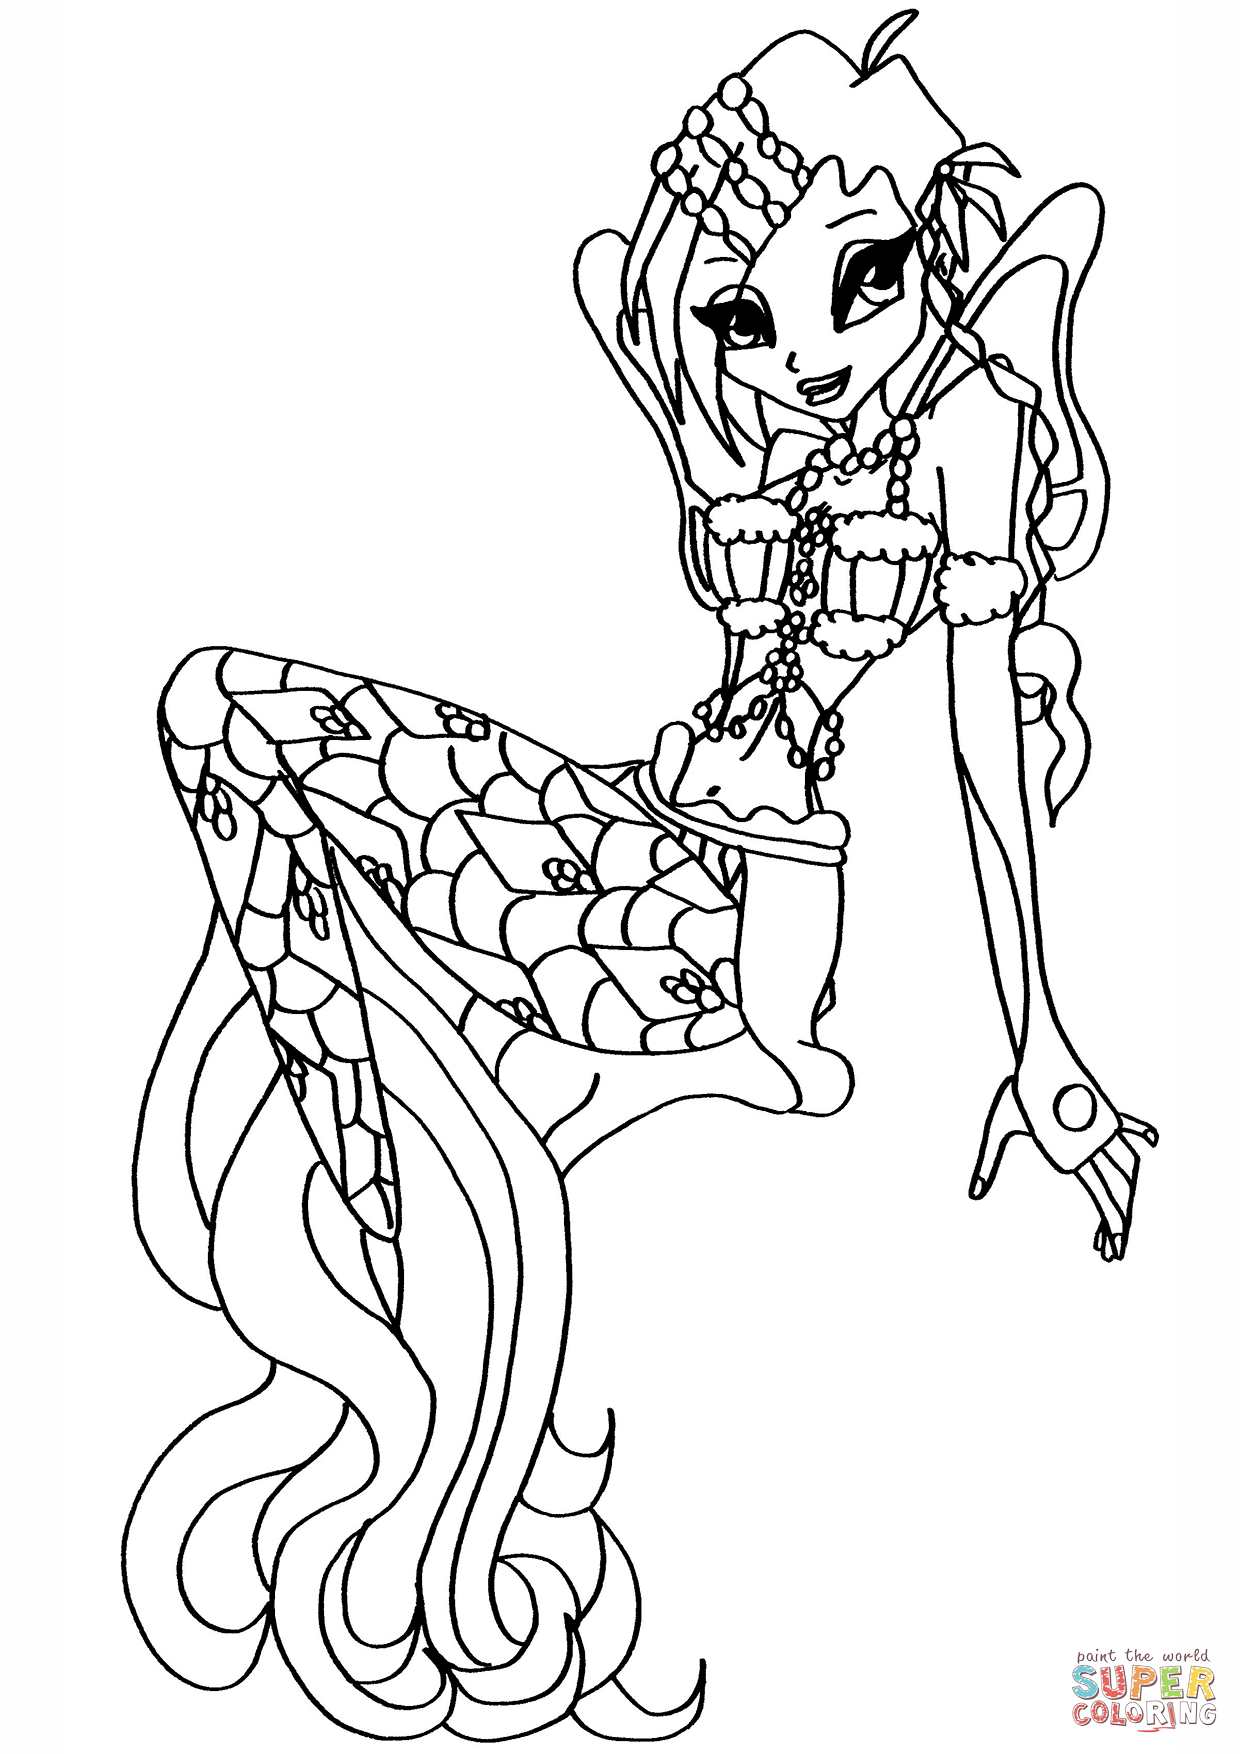 1240x1754 Winx Club Mermaid Tecna Coloring Page Free Printable Pages